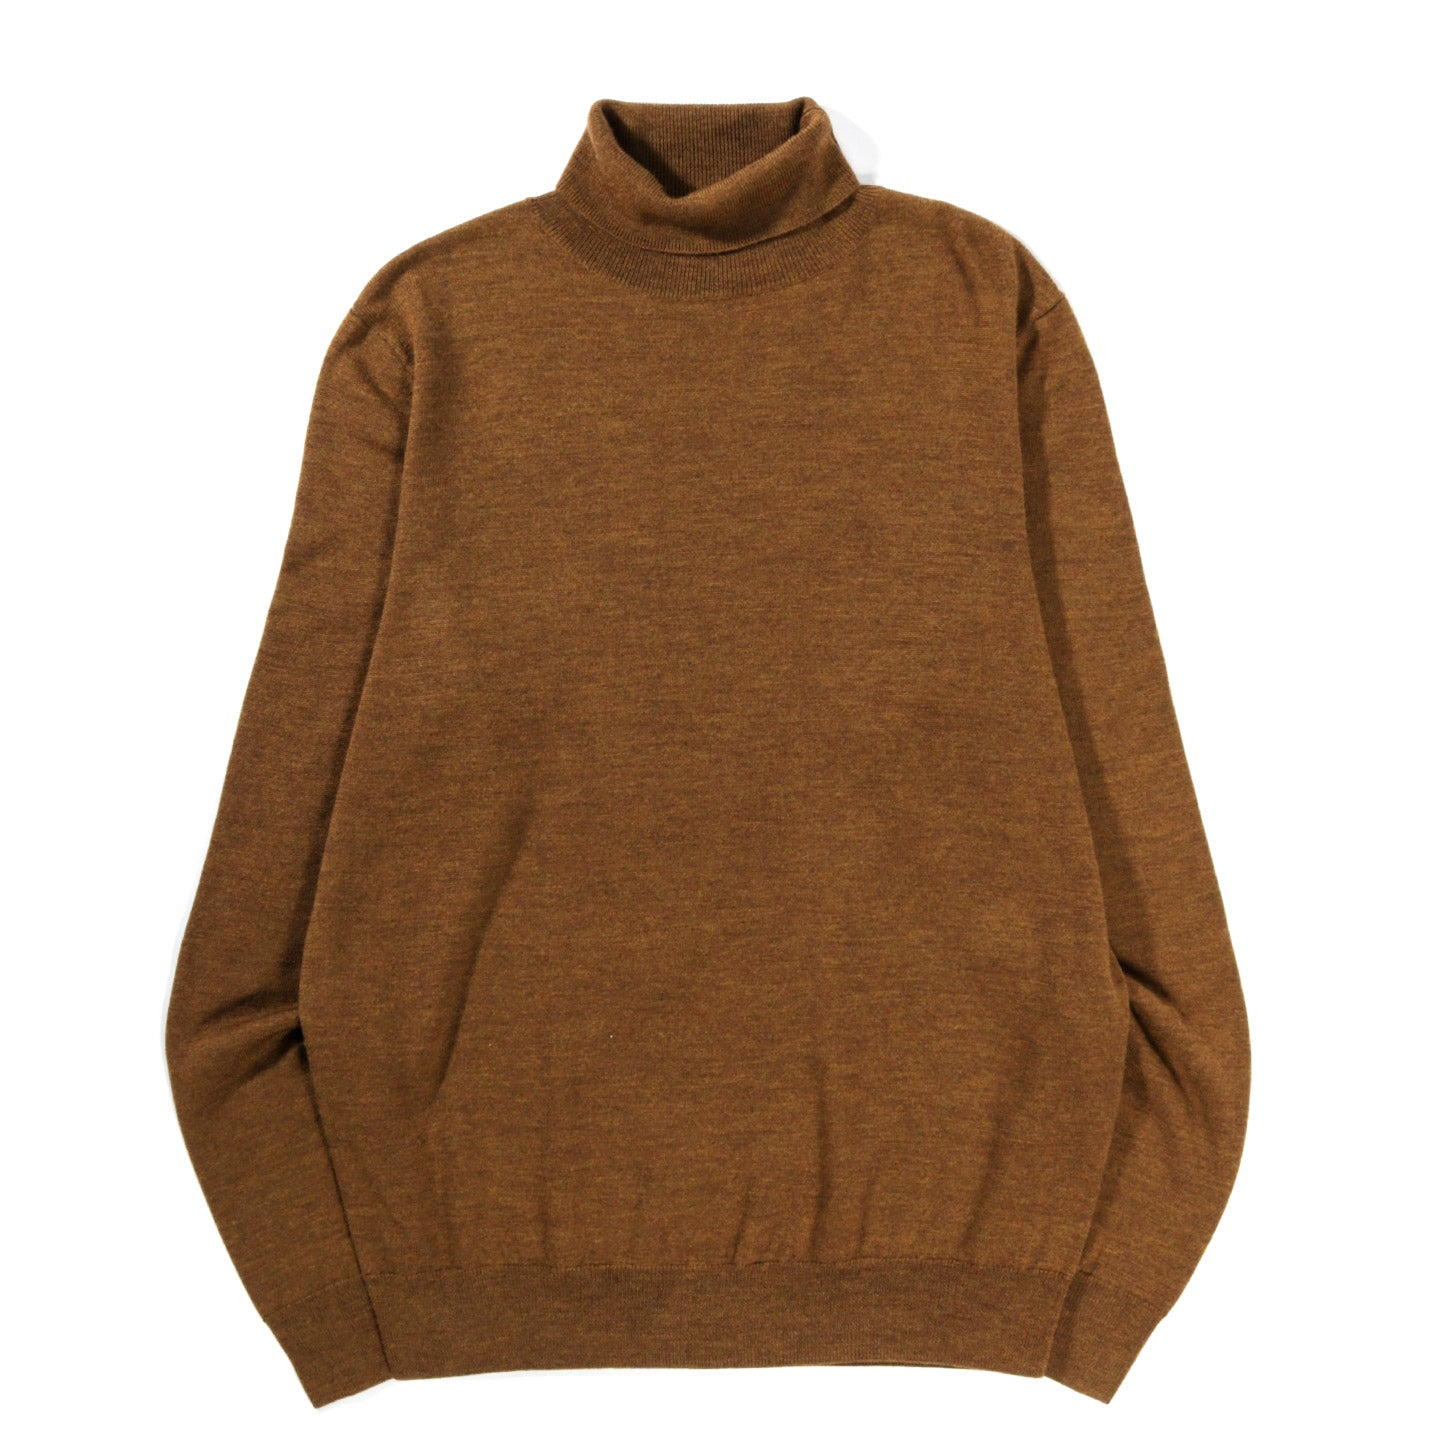 A.P.C. DUNDEE SWEATER HEATHER OCHRE